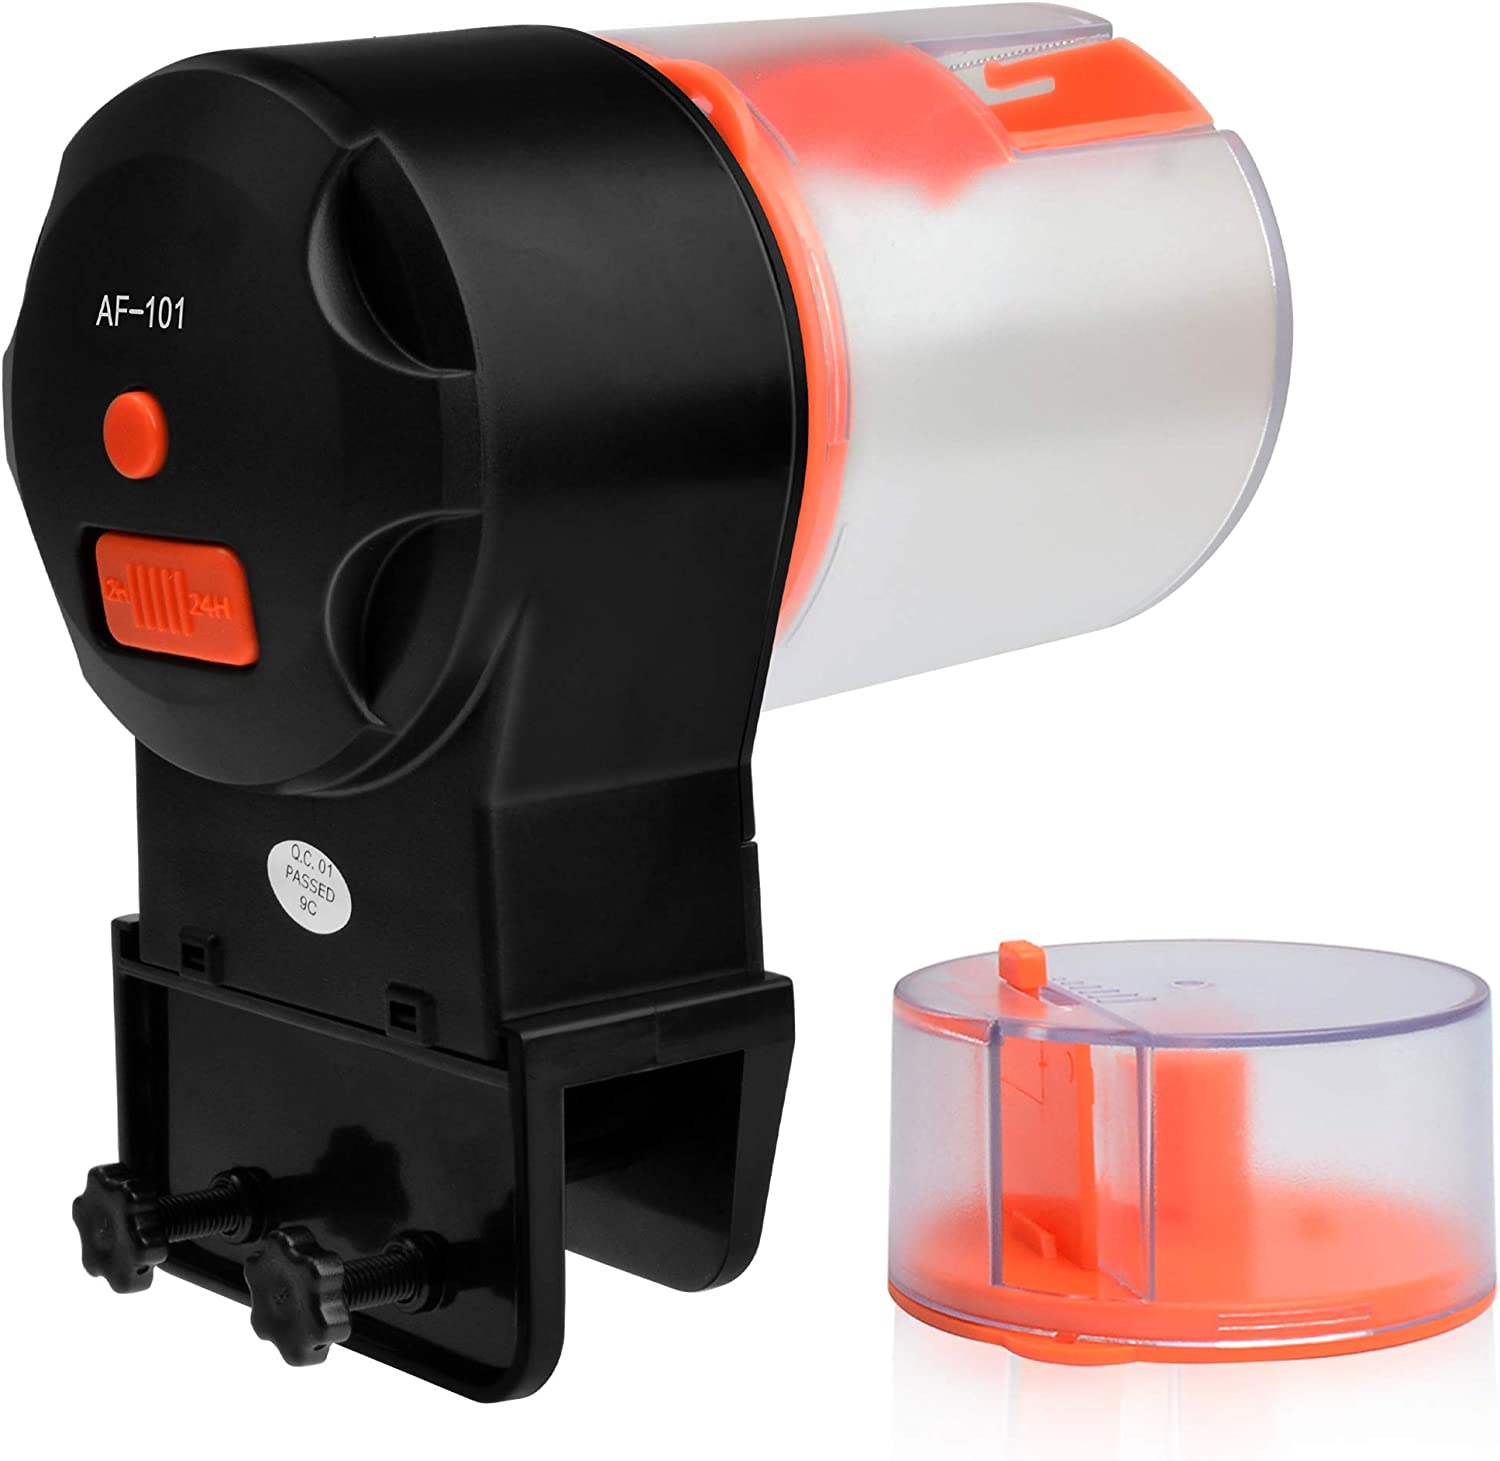 Automatic Fish Feeder, Vacation Fish Feeder Timer Dispenser for Aquariums and Small Turtle Tanks